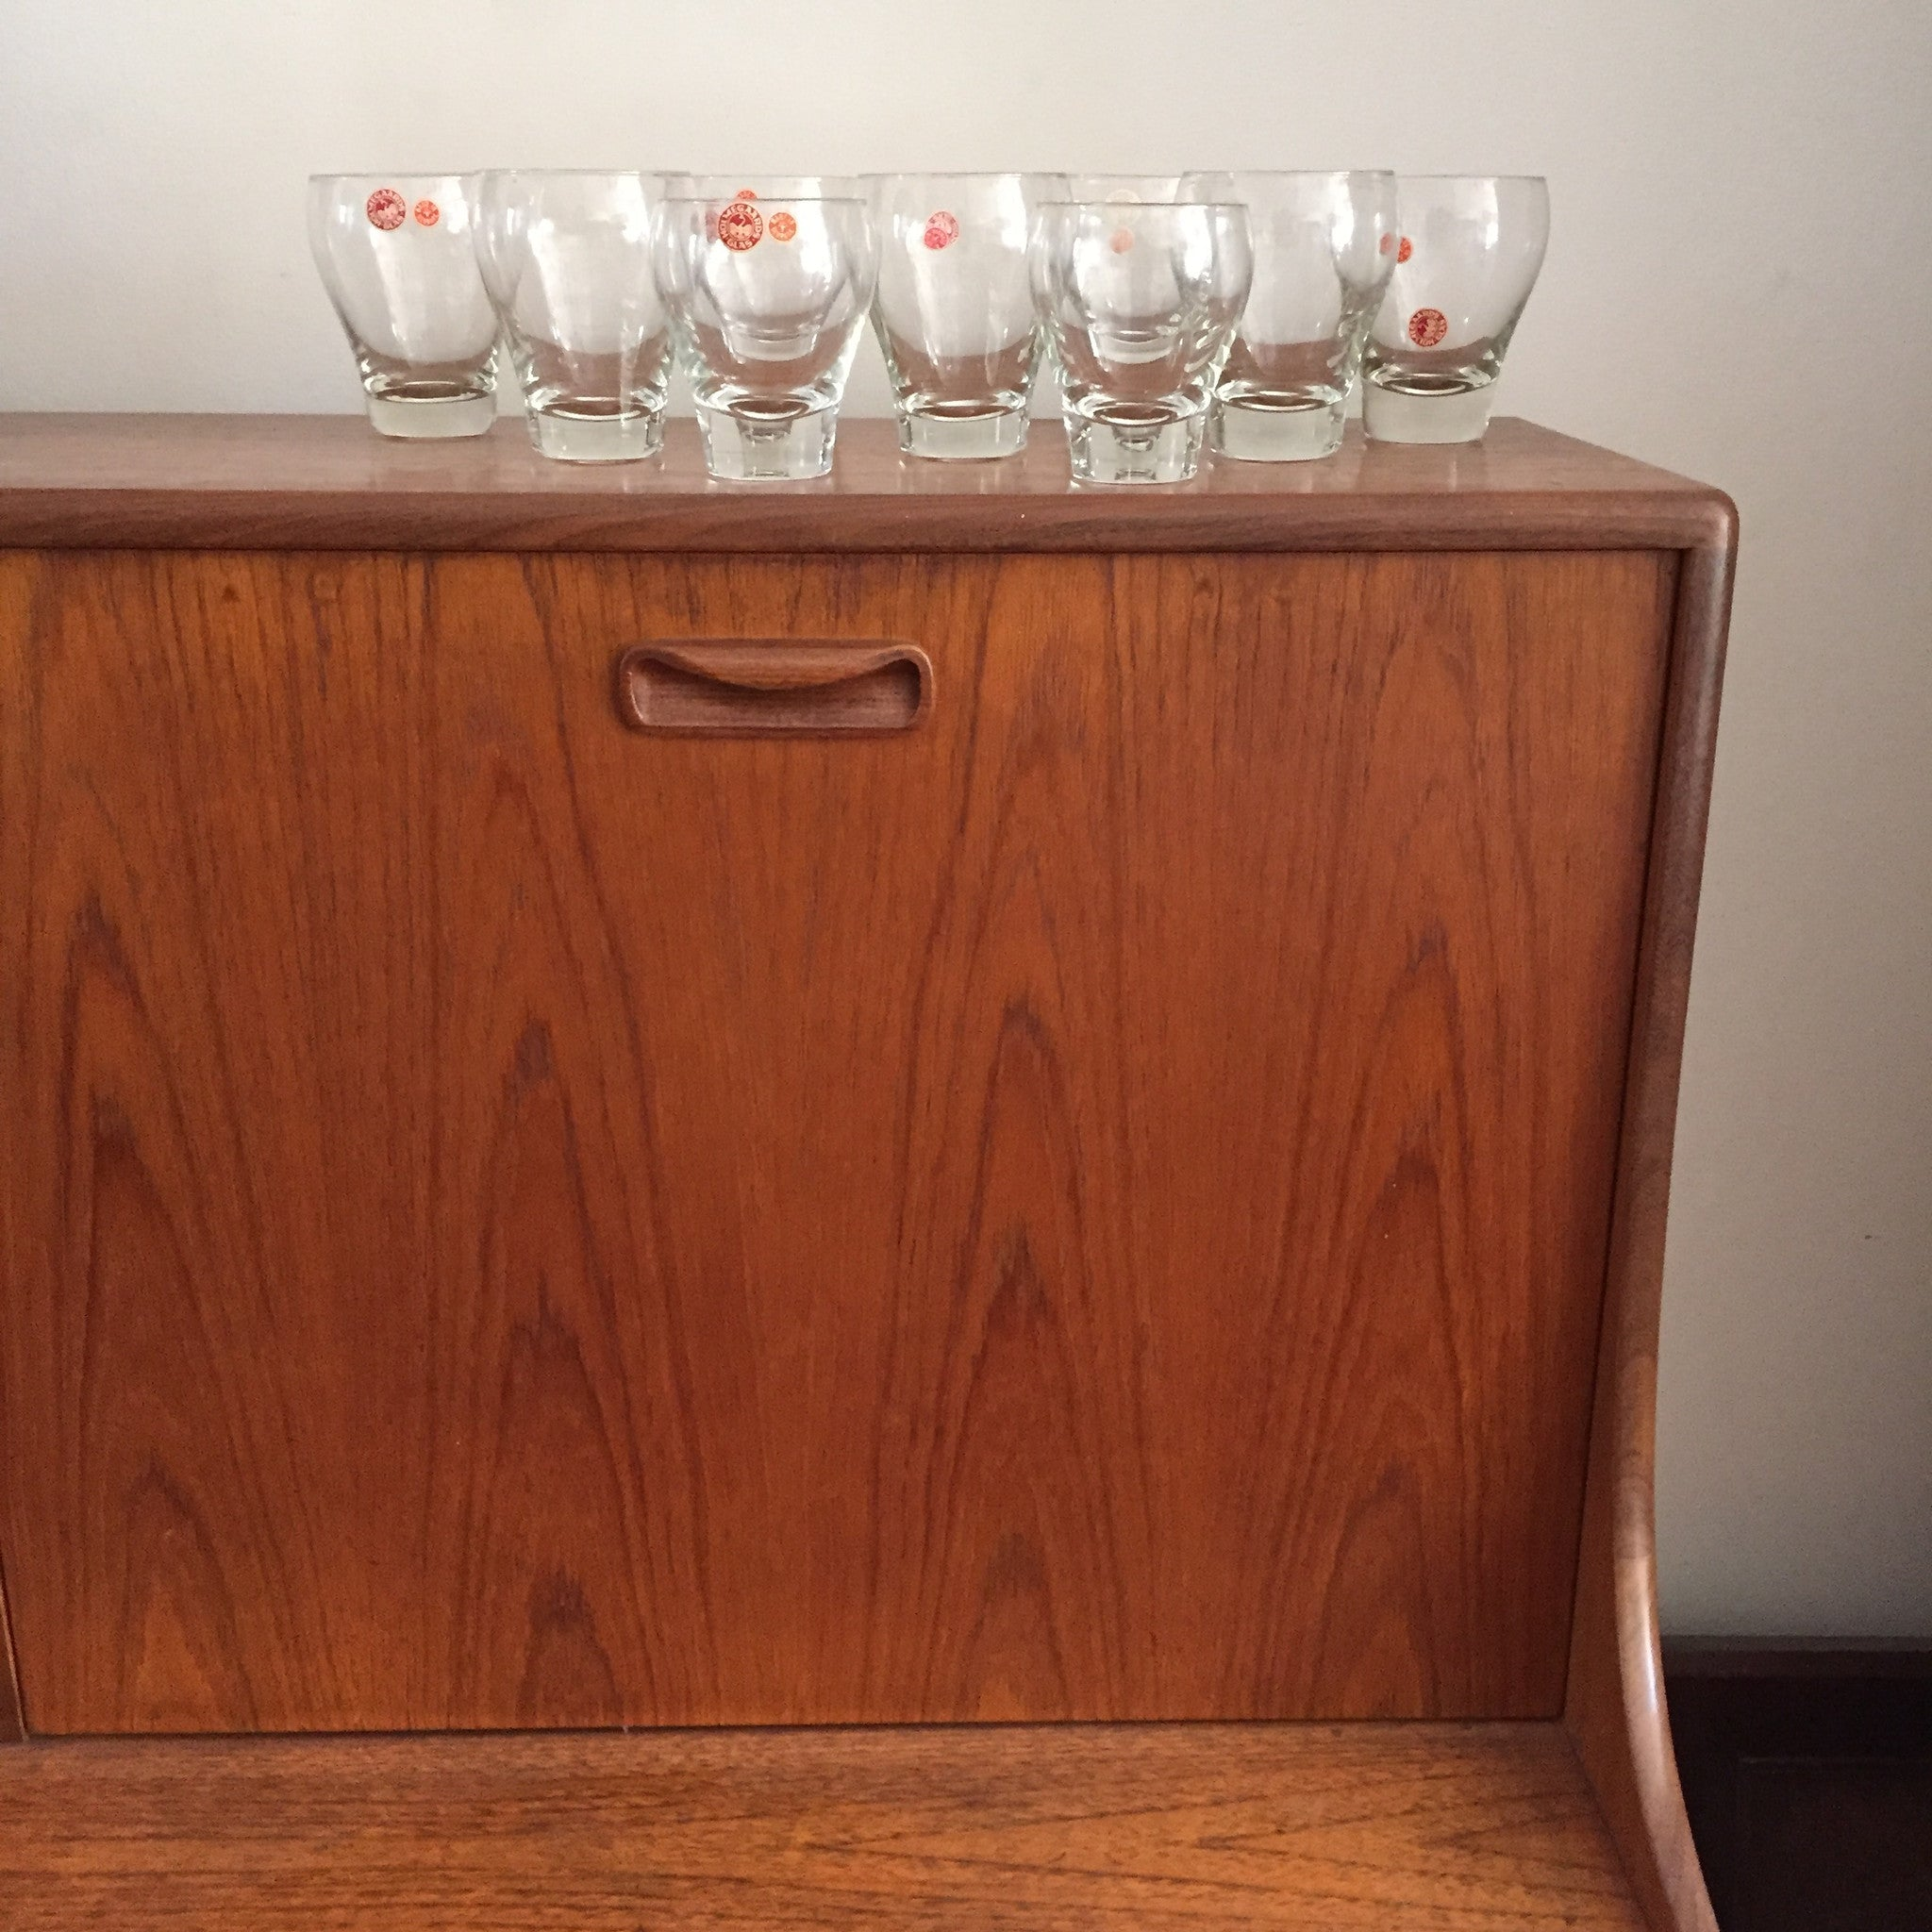 SOLD Living in Style with Per Lütken (1916-1998) Holmegaard Danish Glass Tumblers (8 pieces)